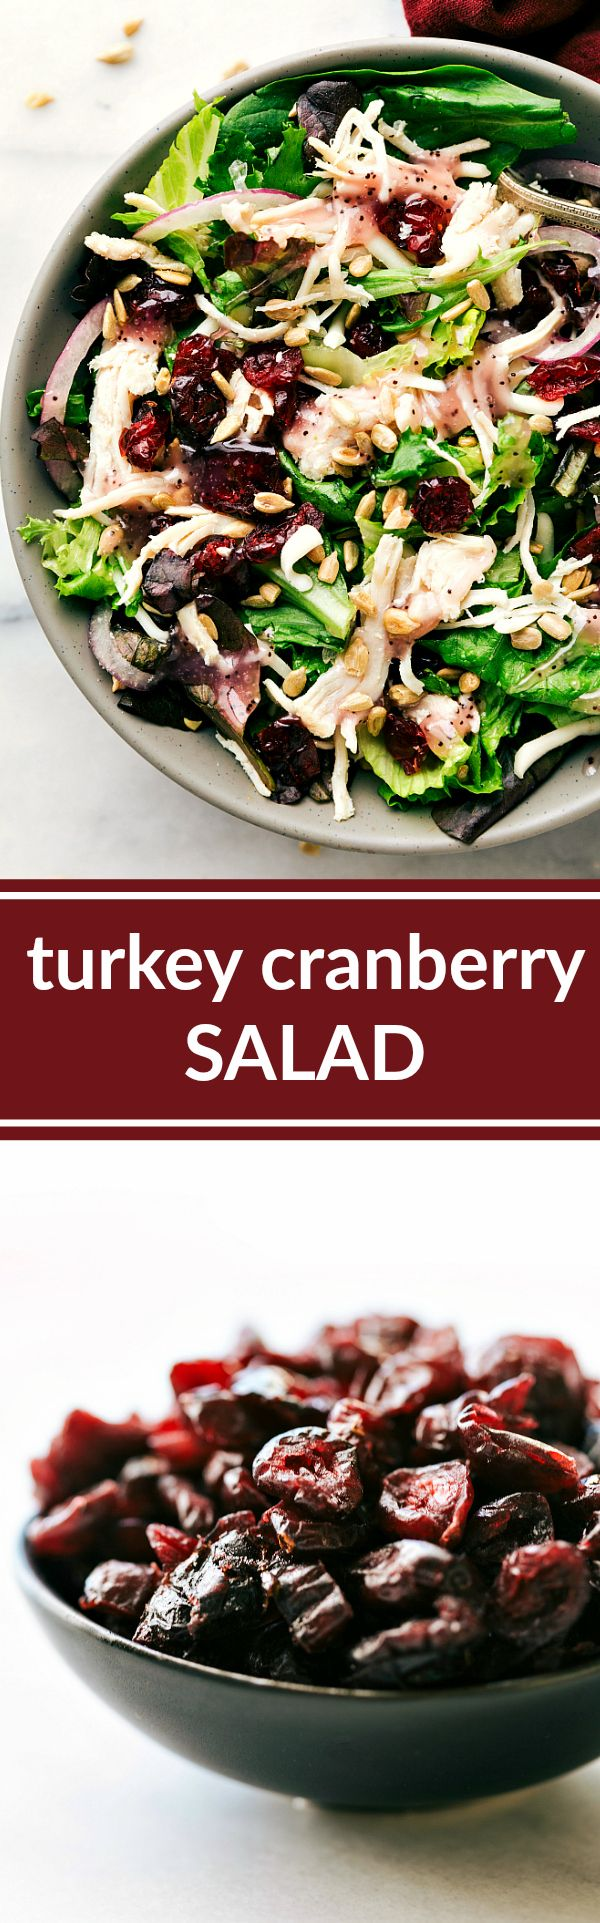 A good-for-you mixed greens salad topped with leftover turkey (or chicken), red onions, dried cranberries, and sunflower seeds Recipe via chelseasmessyapron.com